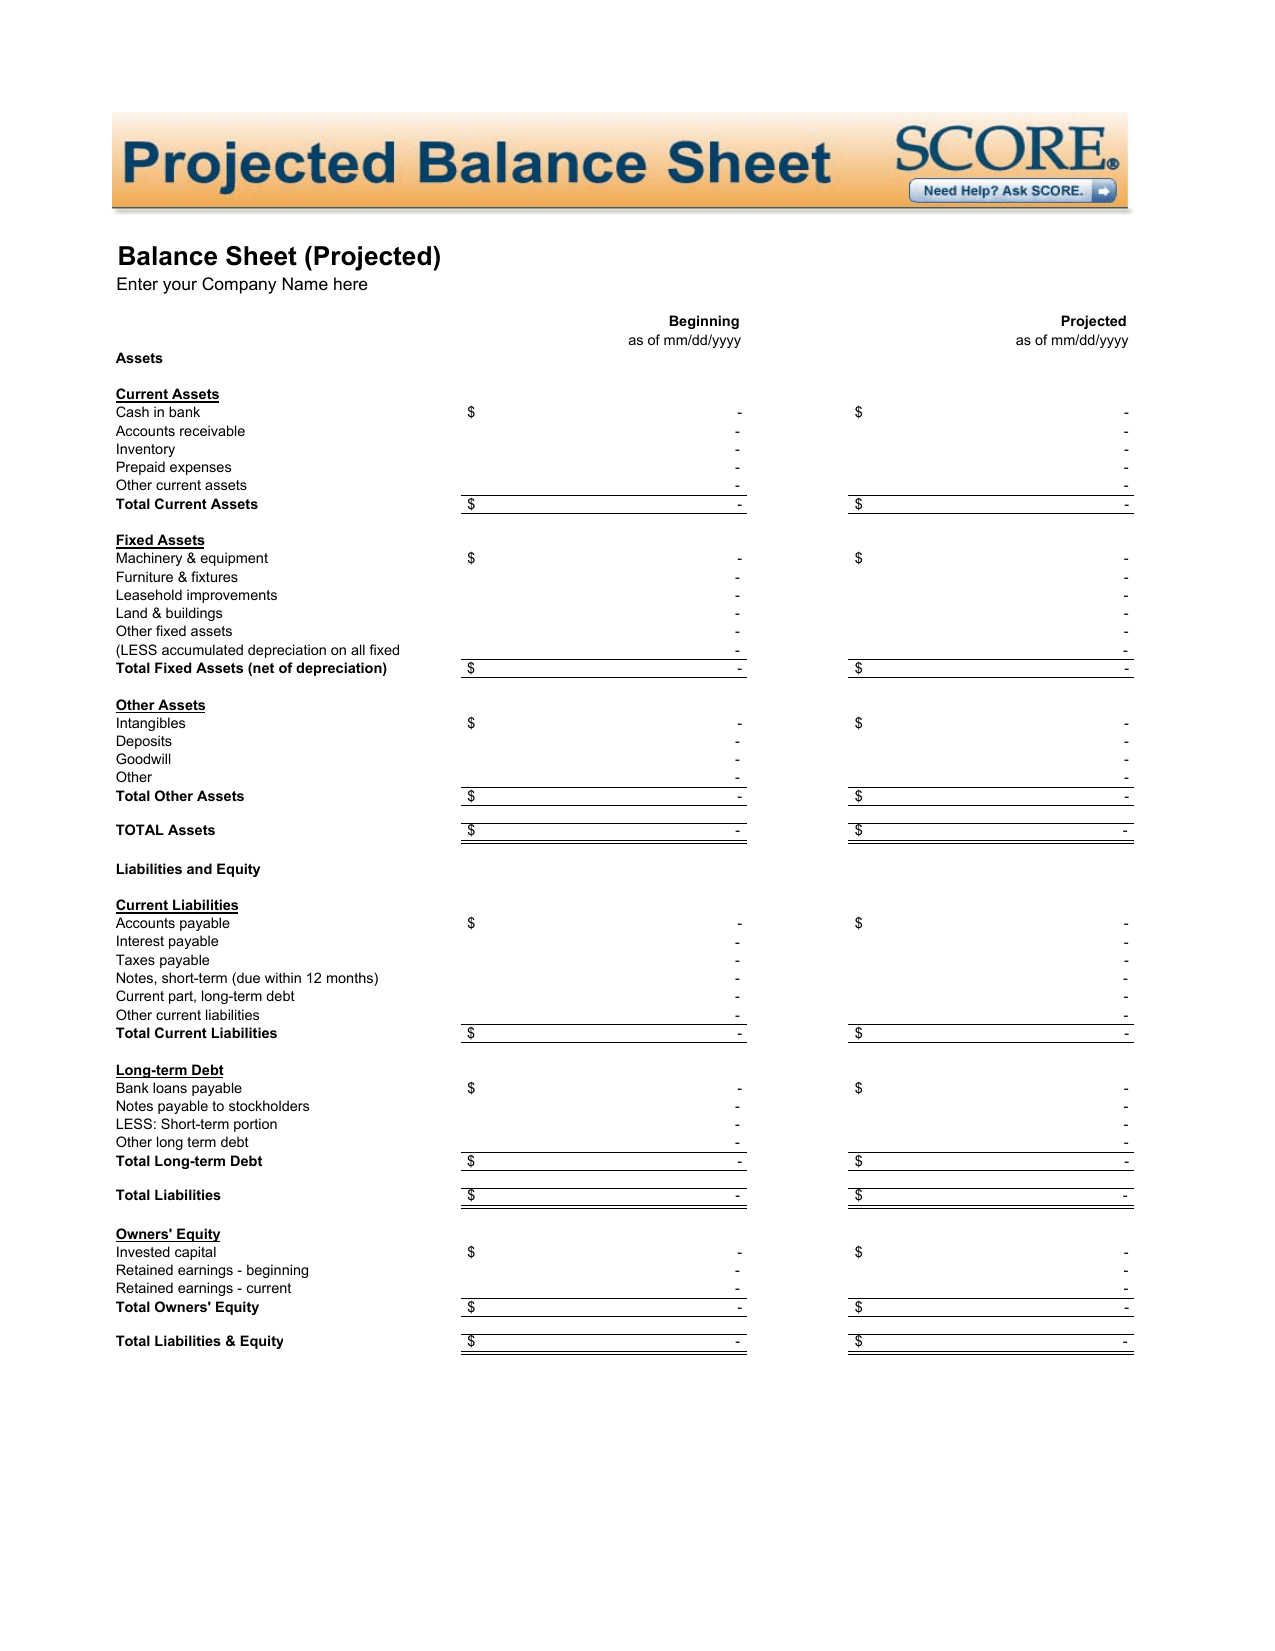 Download Projected Balance Sheet Template